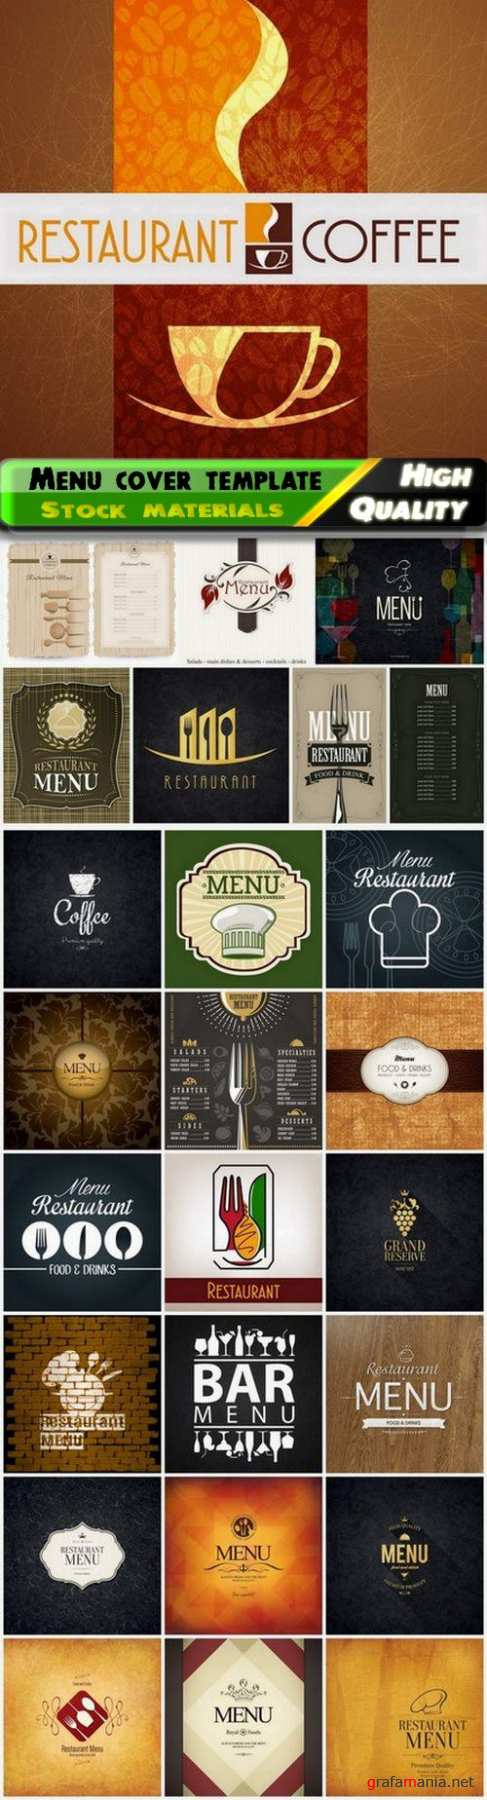 Menu cover template for restaurant or cafe - 25 Eps